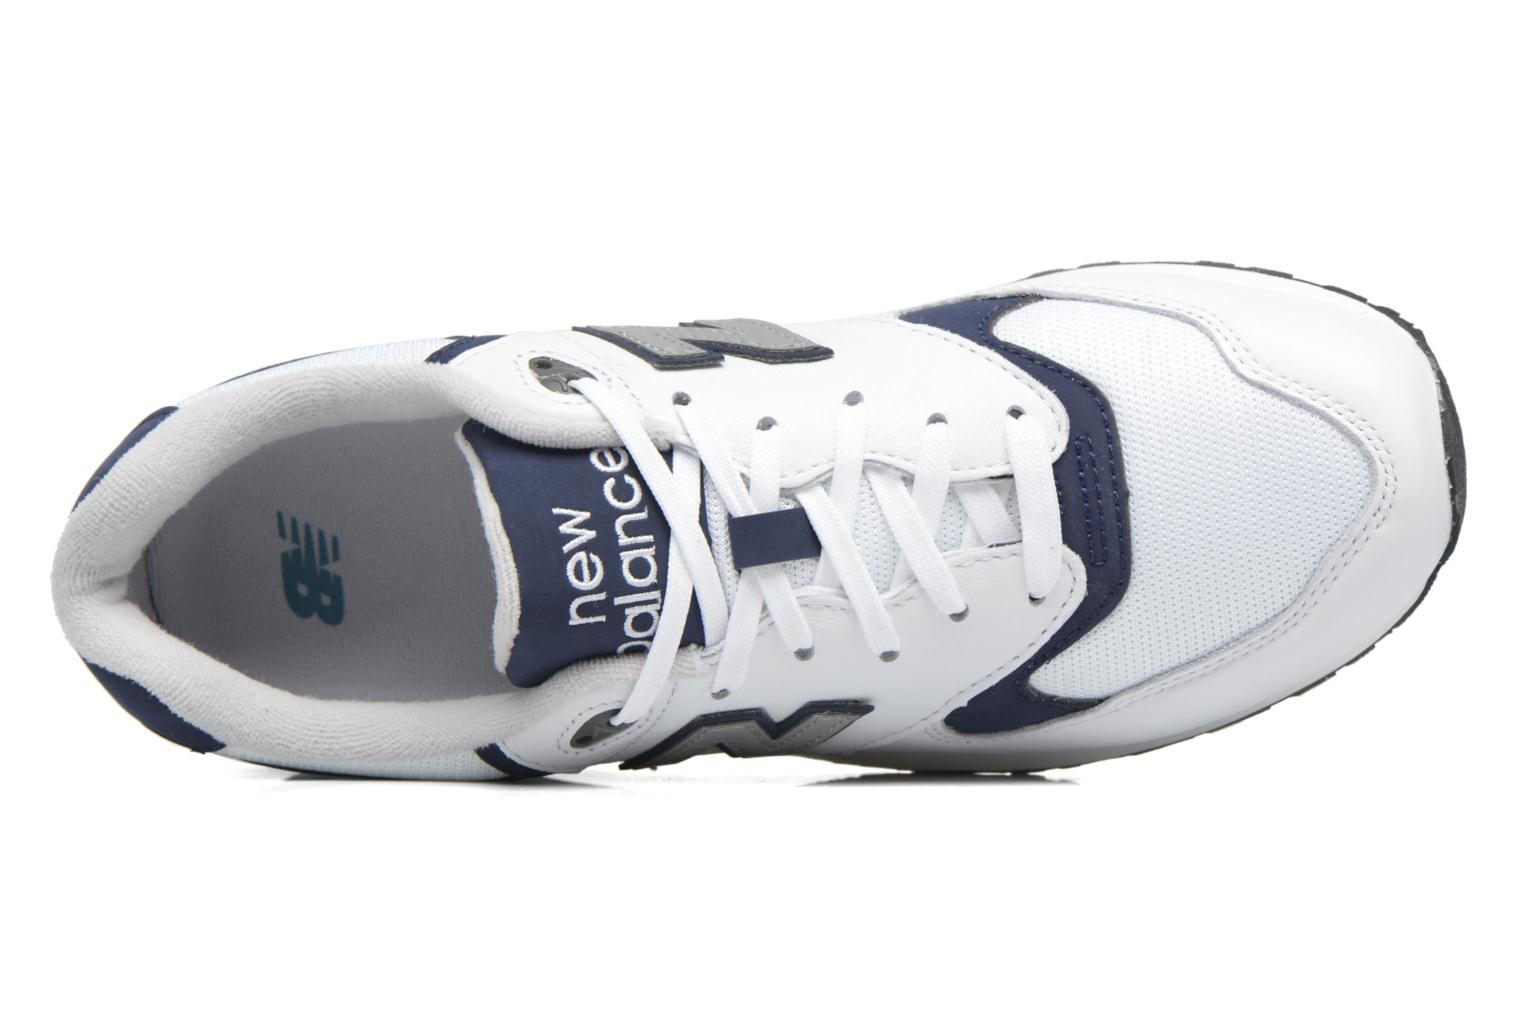 ML999 Luc White/Navy